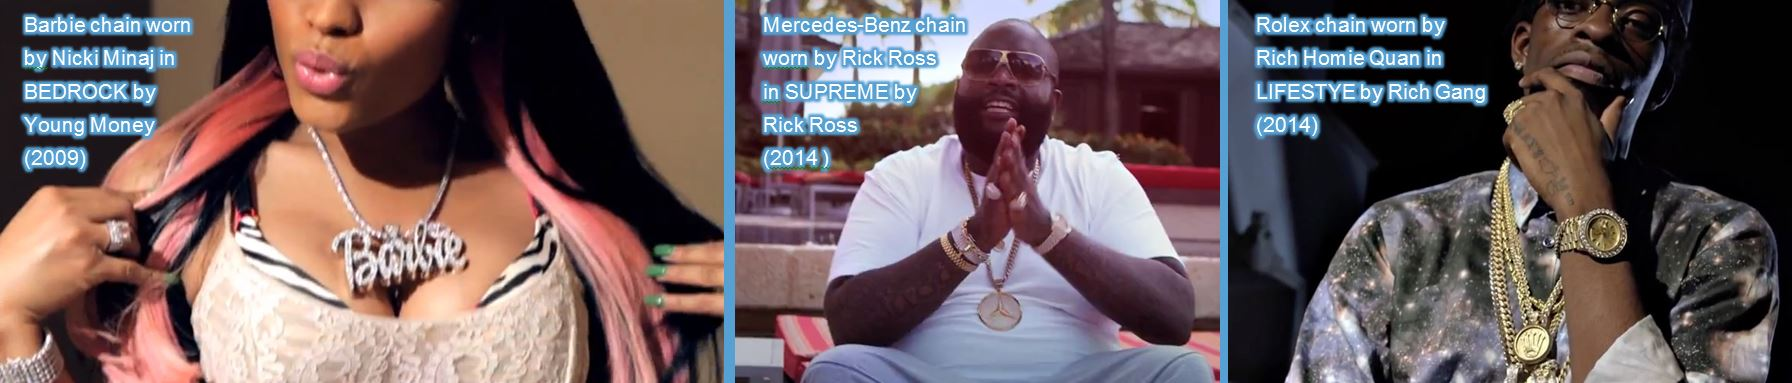 jewelry chain brands in music videos